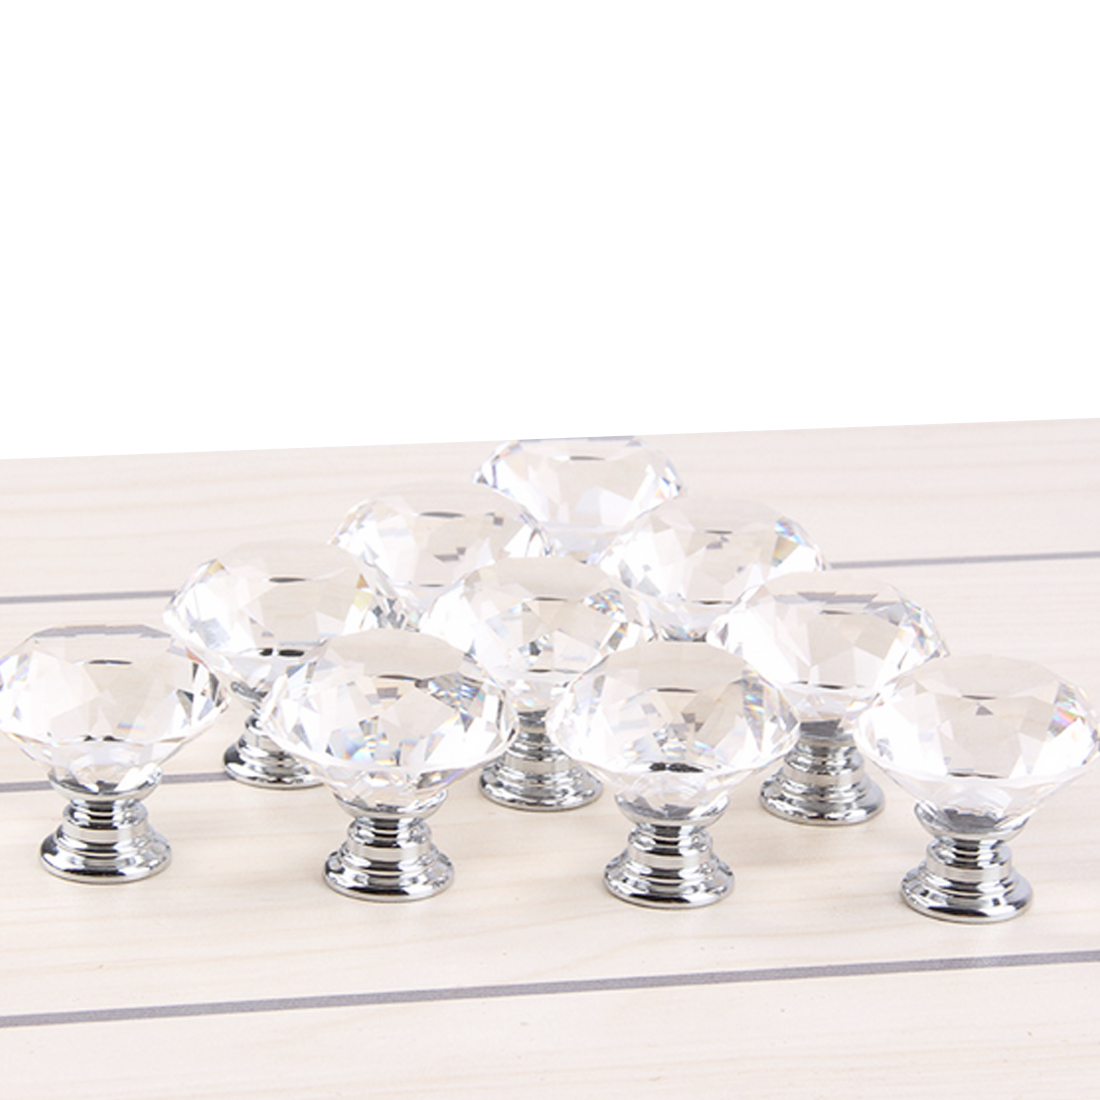 Hot 10 Pcs 30mm Diamond Shape Crystal Glass Door Handle Knob for furniture Drawer Cabinet Kitchen Pull Handles Knobs Wardrobe free shipping hot sale 10pcs k9 crystal handles flash diamond archaize shiny drawer twinkle door knob bathroom handle crystal